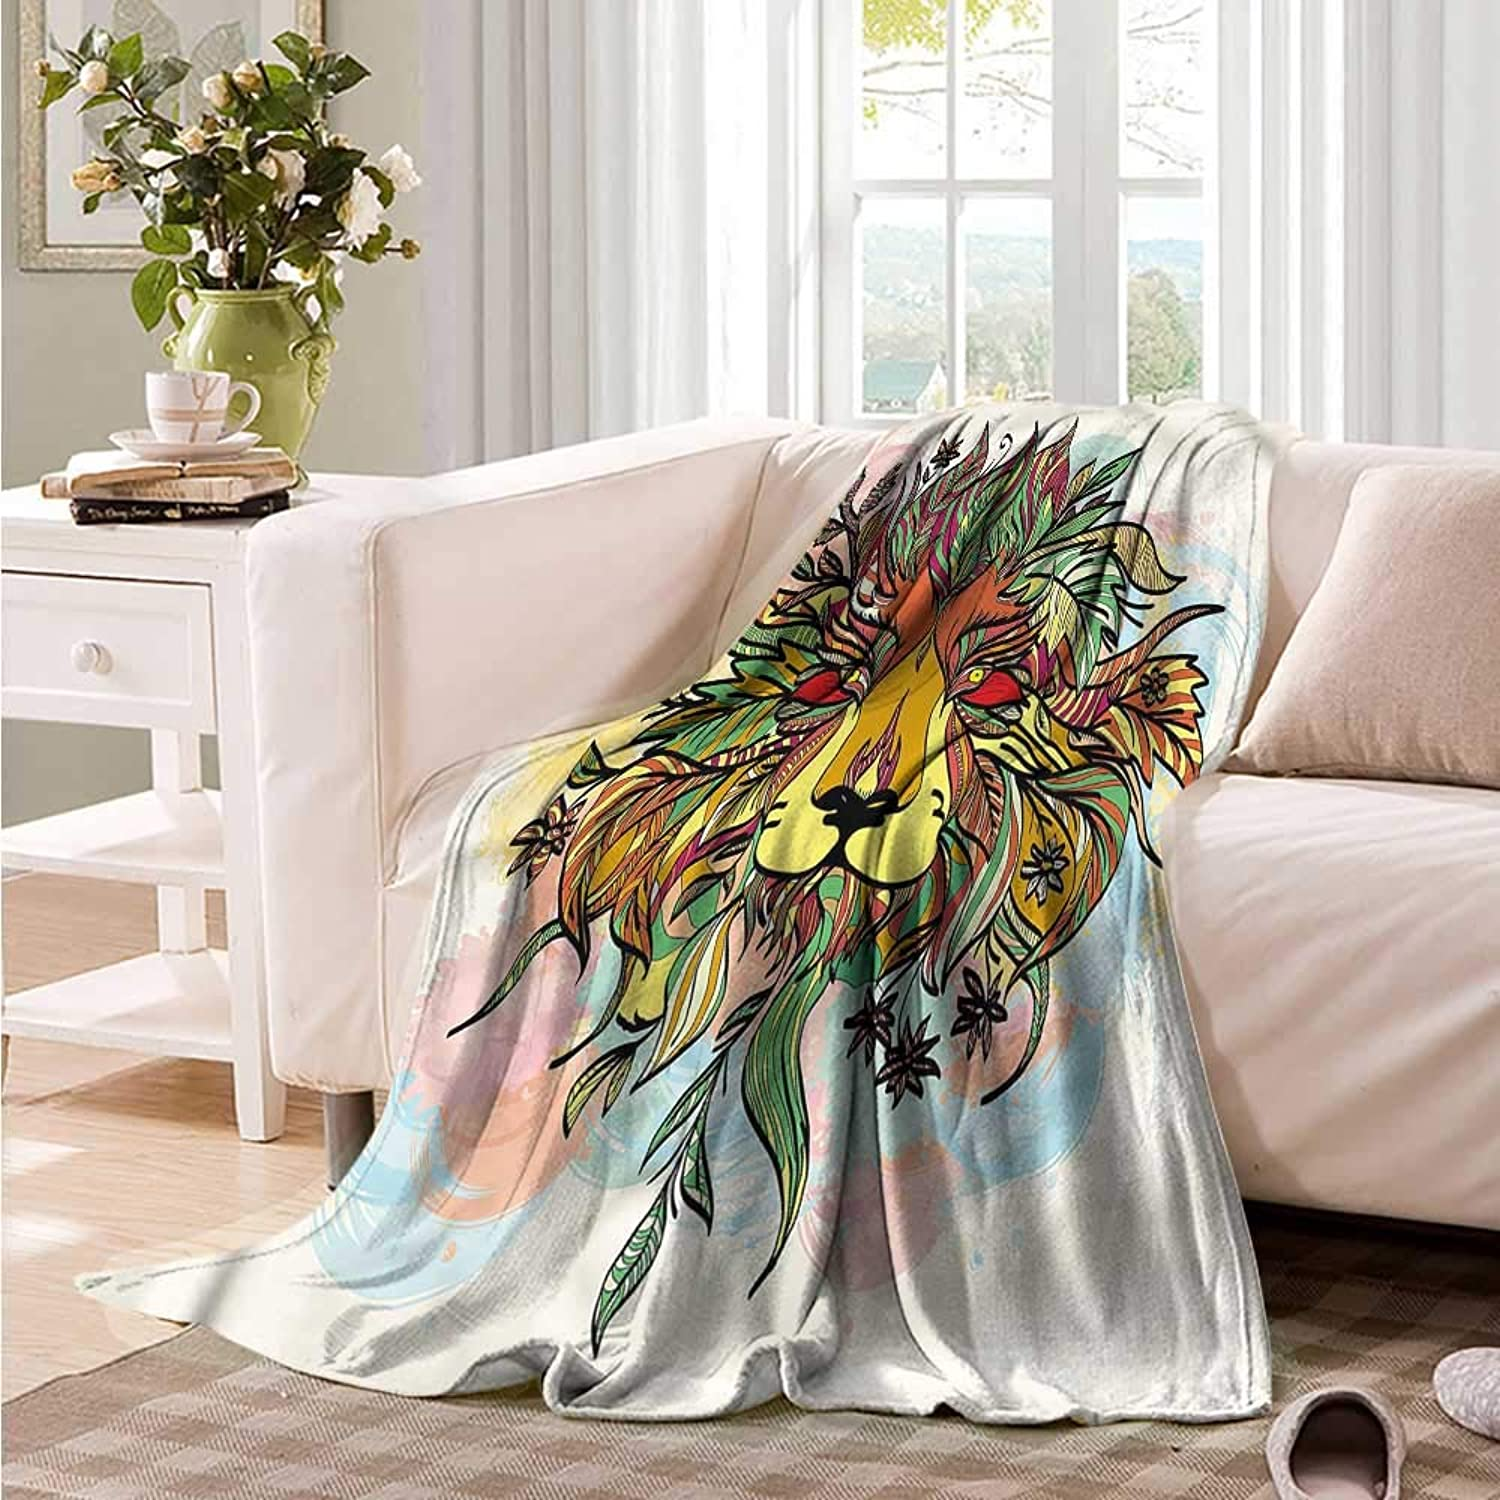 Oncegod Baby Blanket Lion Ornamental Floral Animal Head Camping Throw,Office wrap 60  W x 51  L